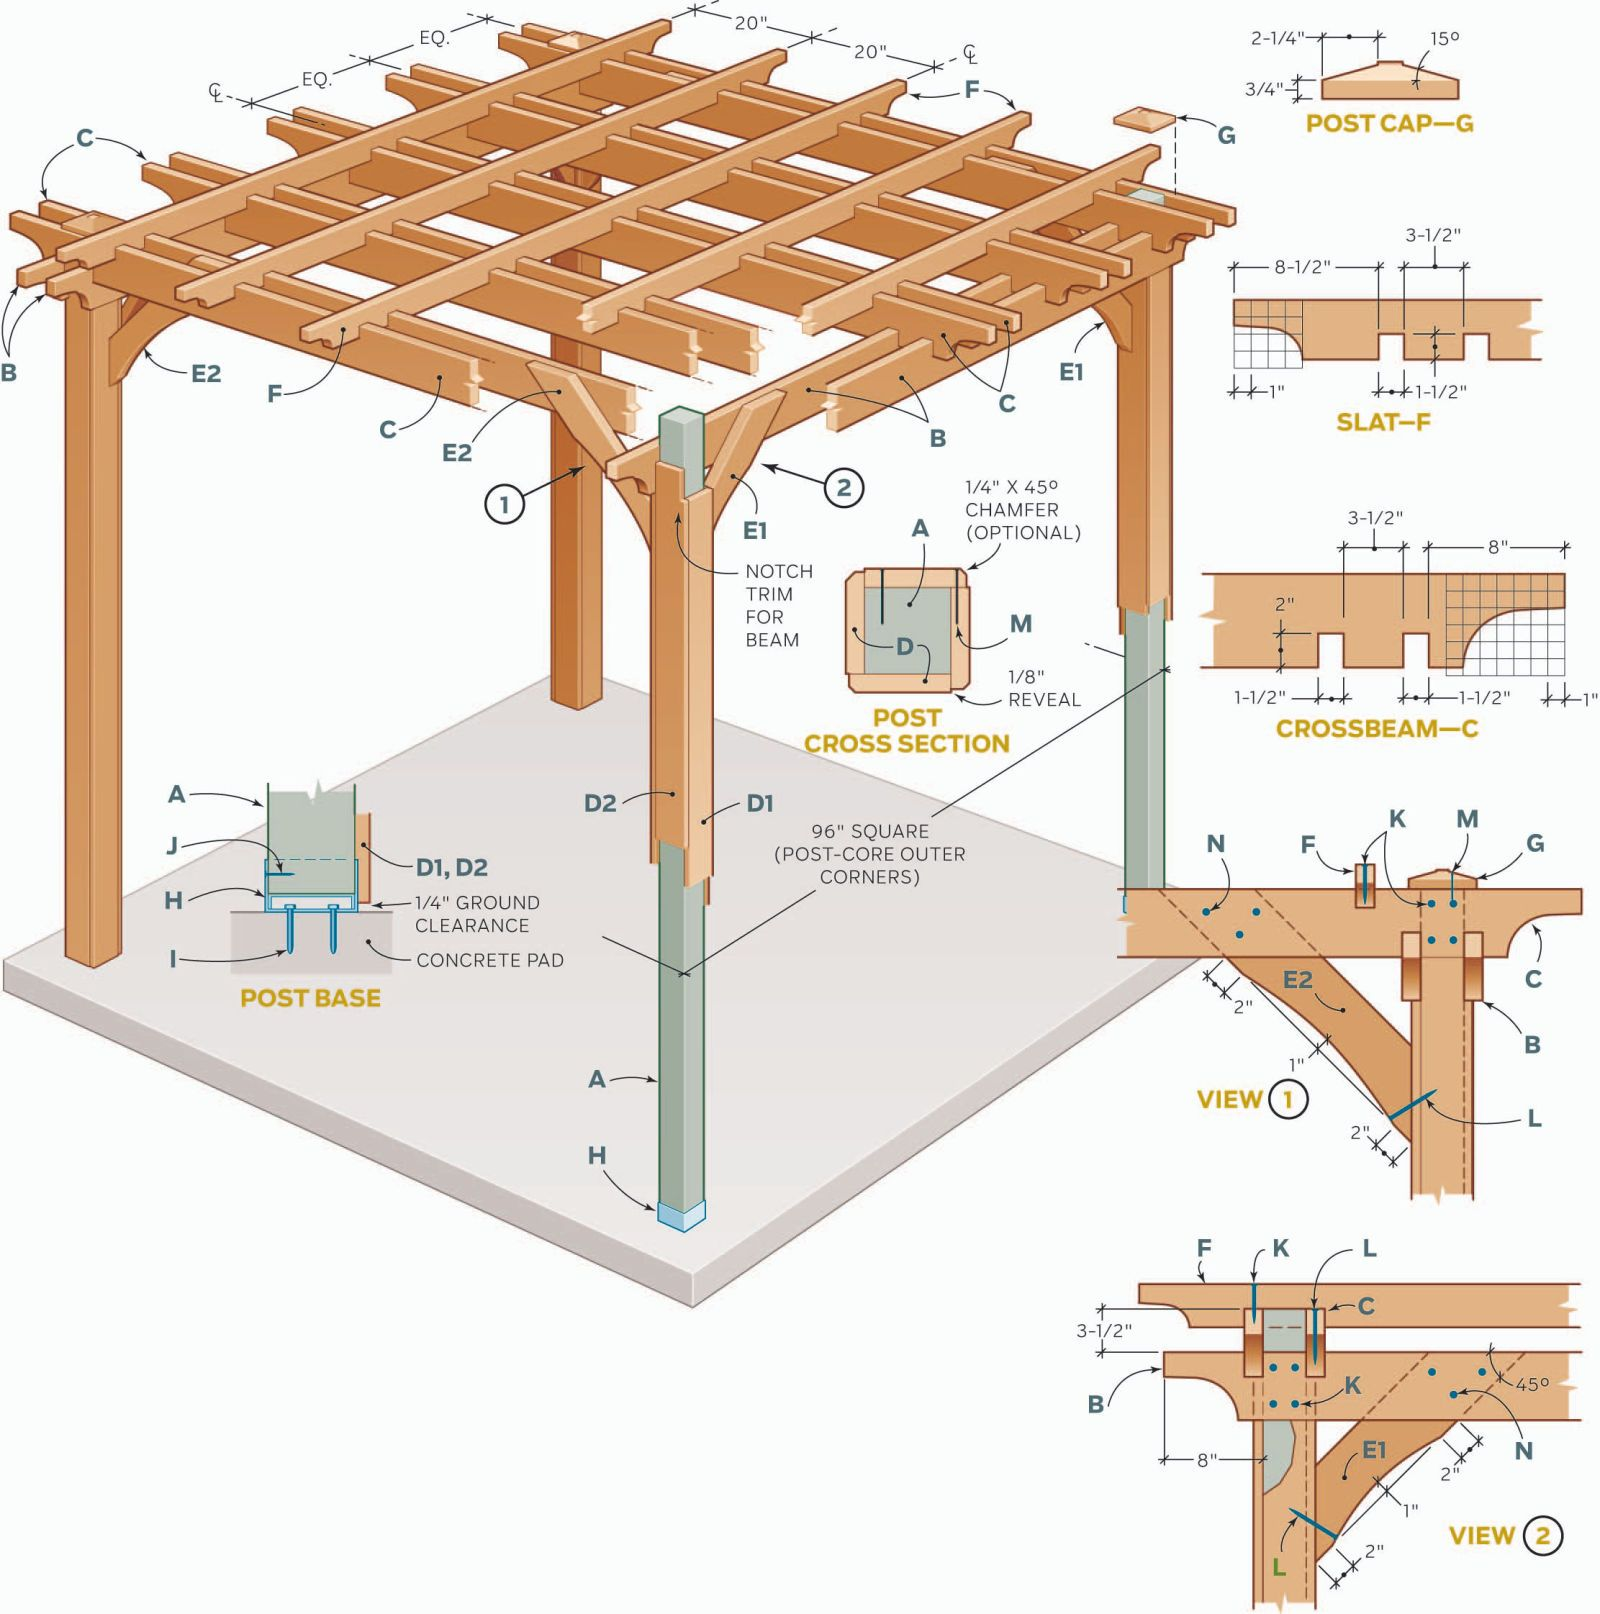 Comment Fabriquer Un Auvent De Terrasse pergola plans: how to build your own pergola | construire